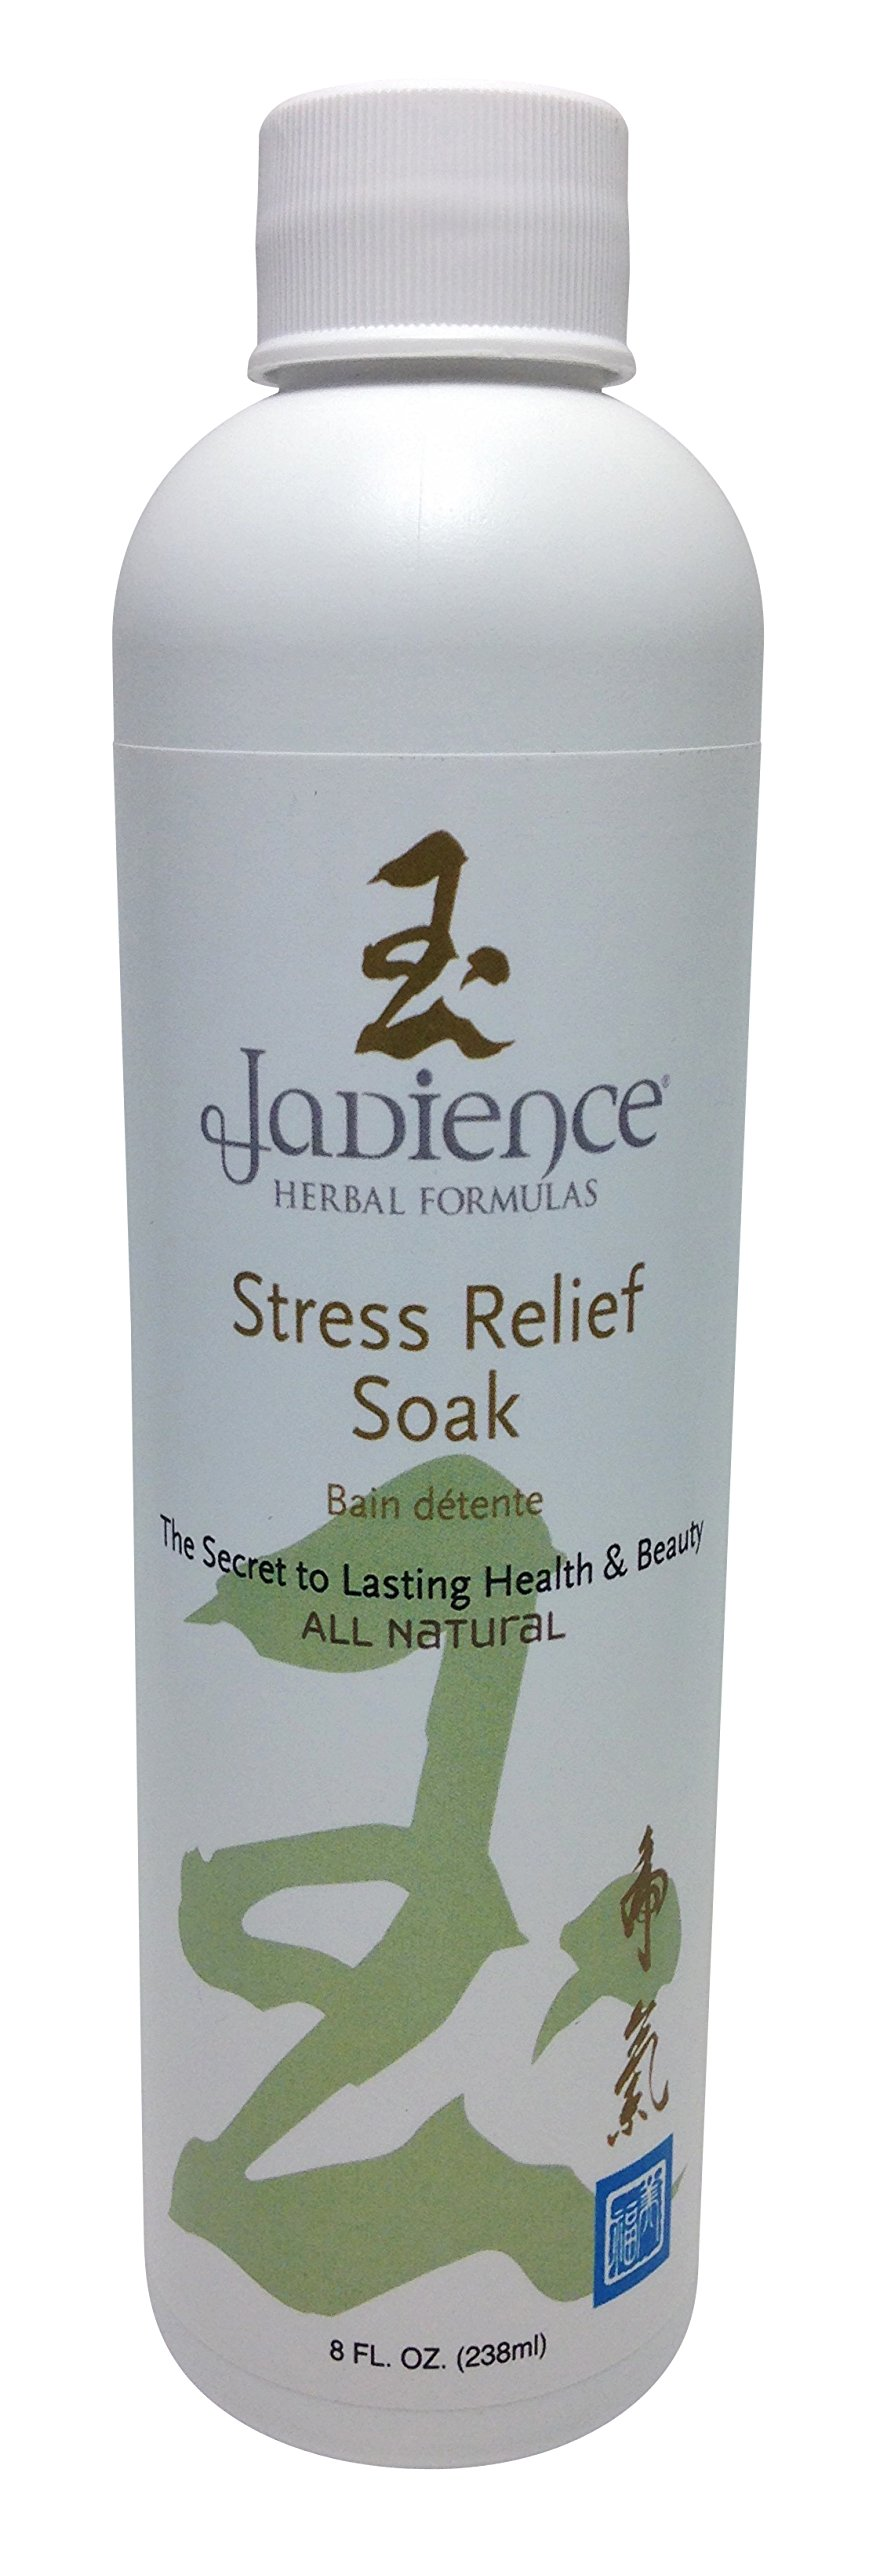 Jadience Stress Relief Bath or Foot Spa Soak: 8 Oz - For Overall Mind & Body relaxation and stress reduction   Sleep Better   Joint Support & Muscle Relaxer   Headache, Fatigue & Emotional Imbalances